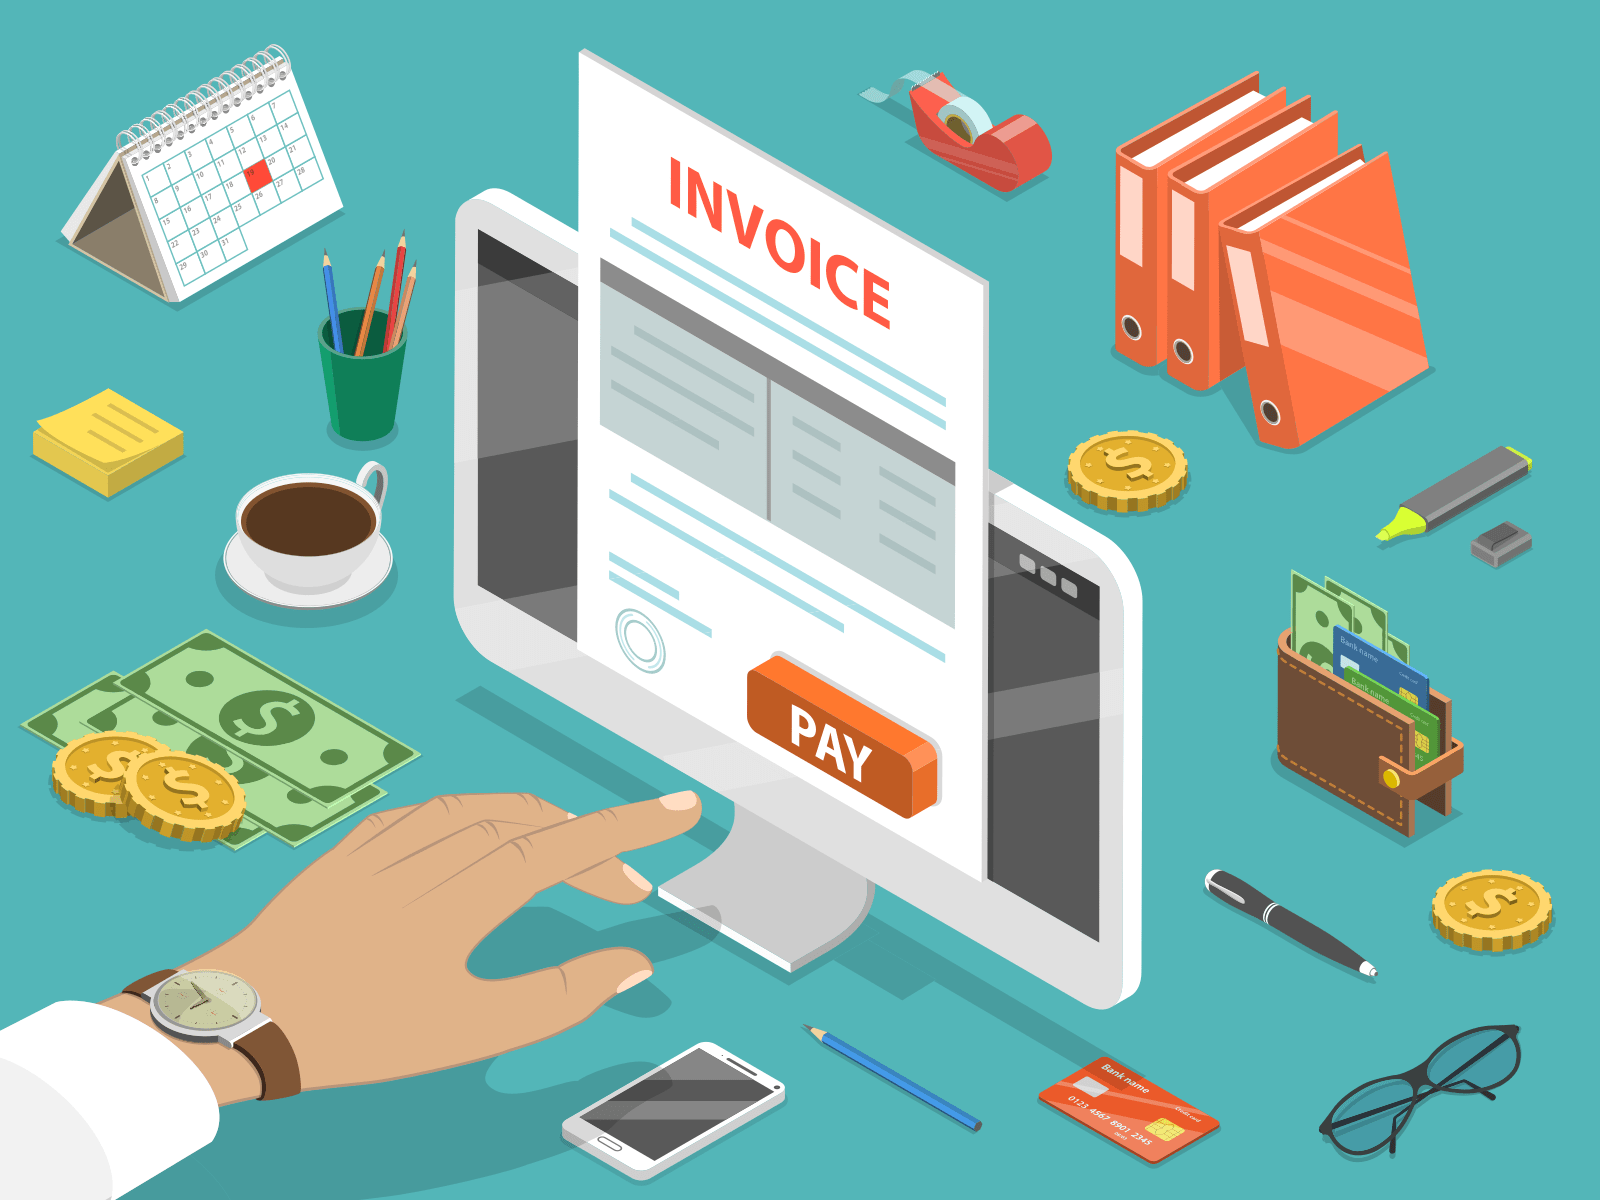 3 Invoicing Tips for Your Janitorial Business